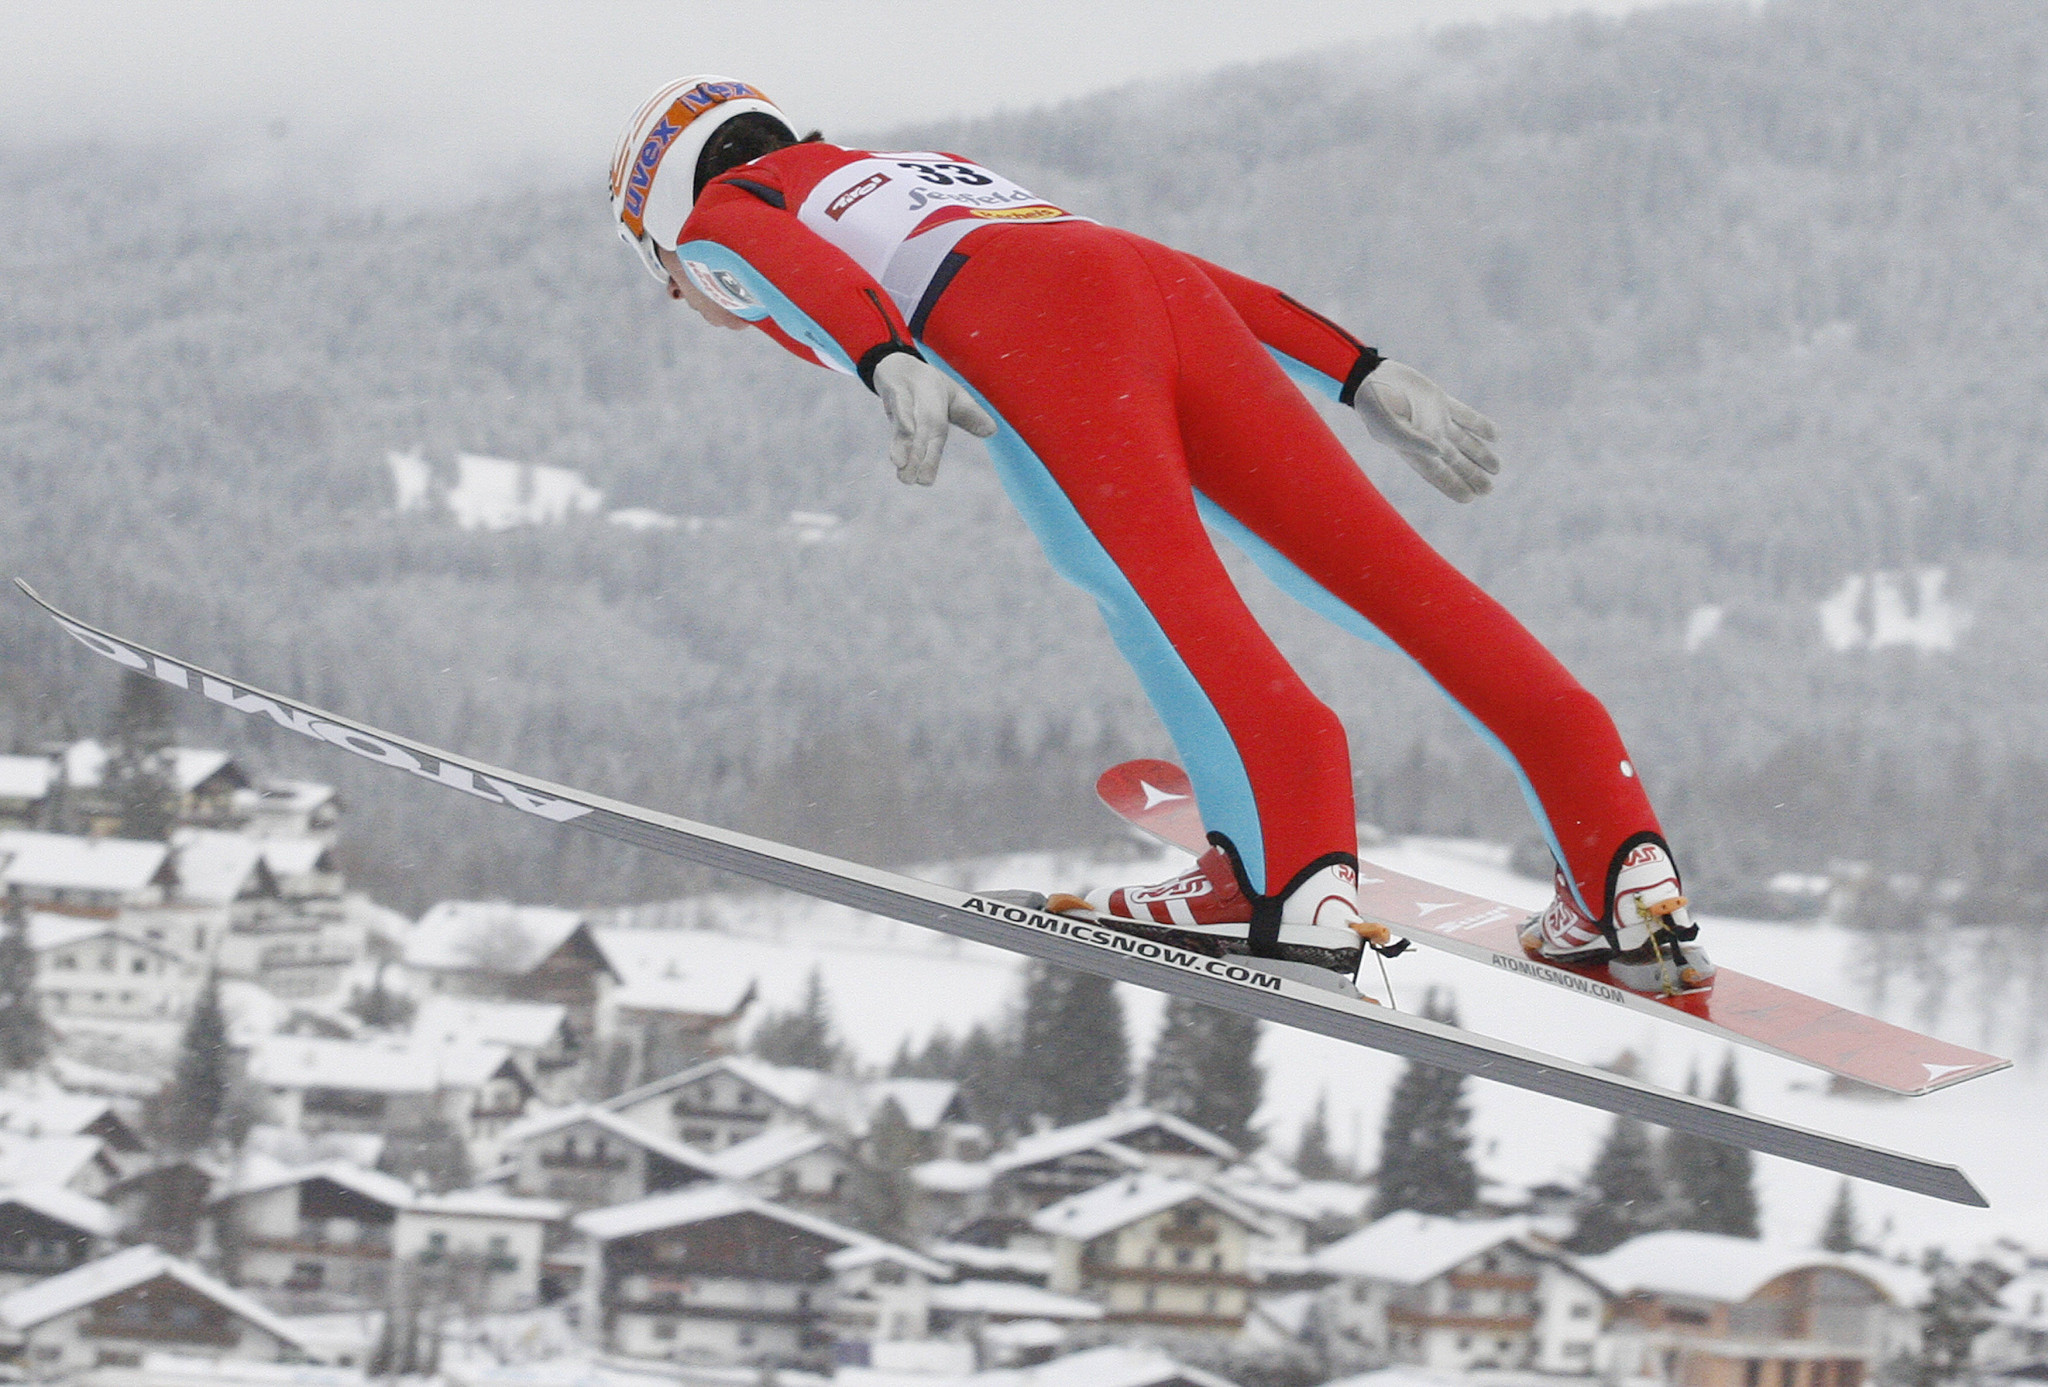 Tomaz Druml competes during the 15th Nordic Combined World Cup in January 2010 at the 'Toni-Seelos' jump in Seefeld ©Getty Images